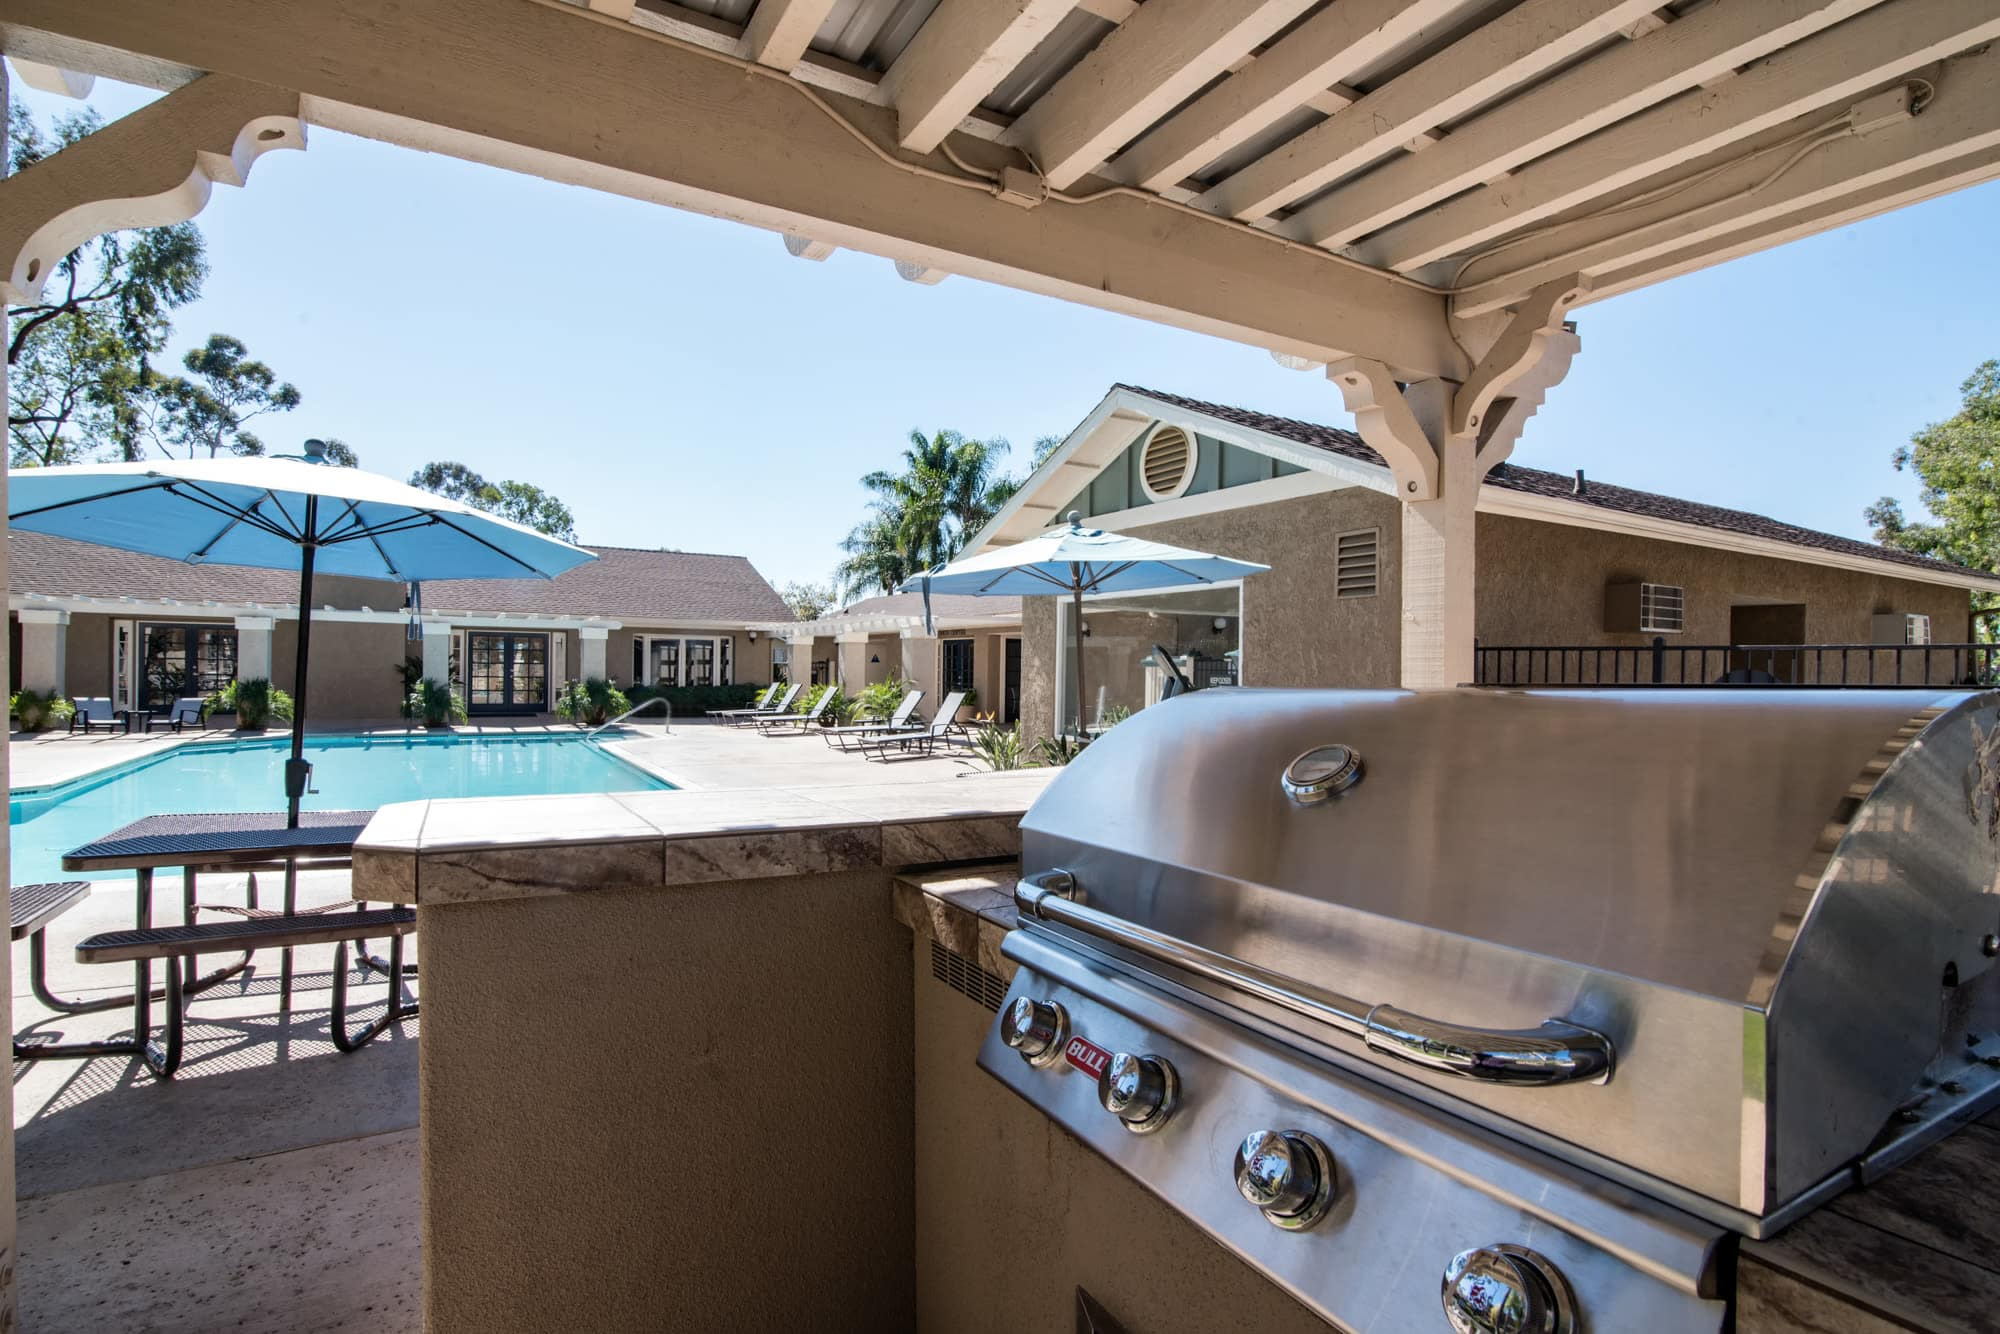 Covered poolside barbecue area at Lakeview Village Apartments in Spring Valley, California